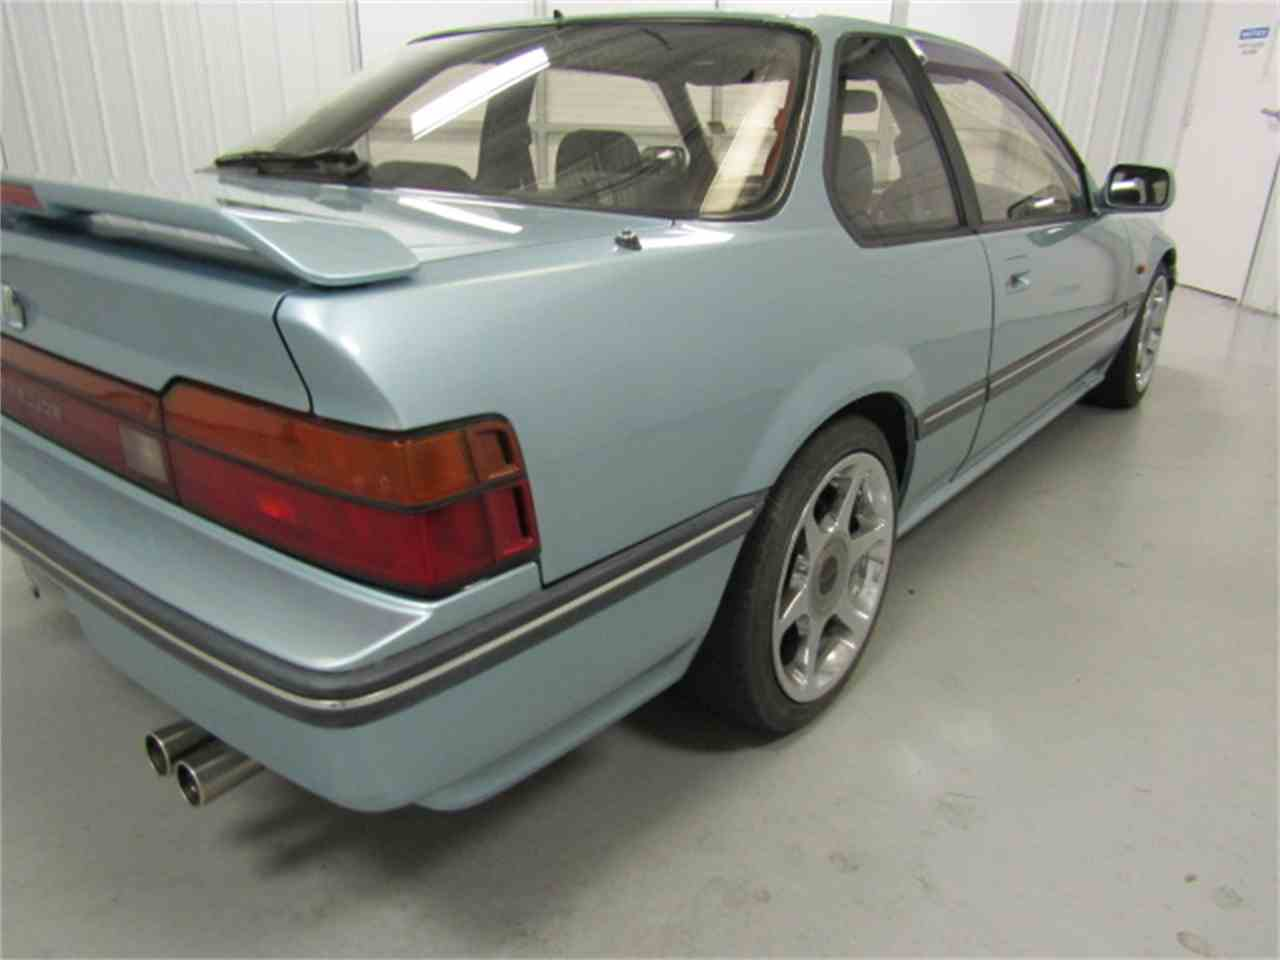 Large Picture of '88 Honda Prelude located in Christiansburg Virginia - $6,979.00 - JM30